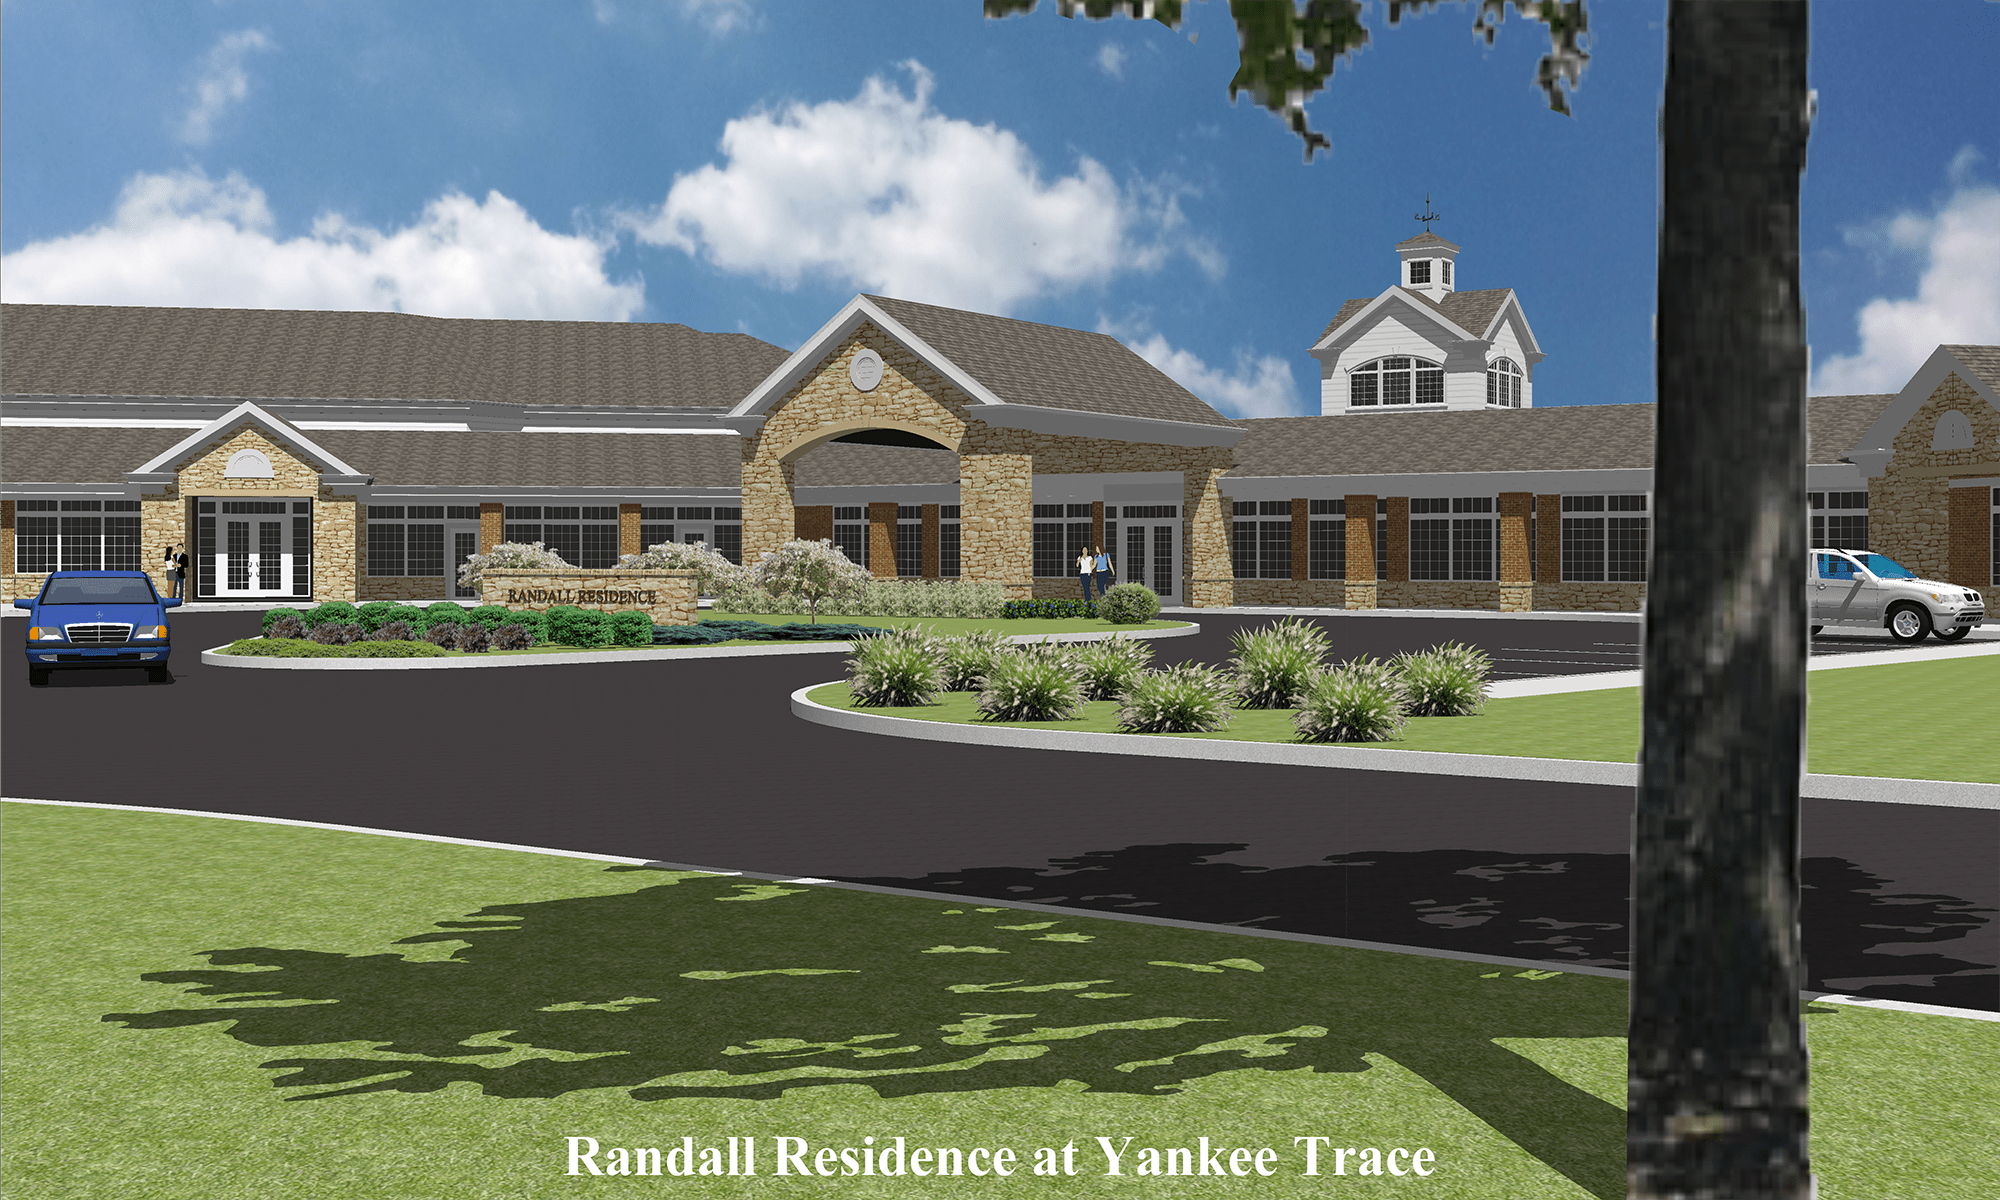 Premier assisted living care at Randall Residence of Centerville in Centerville, Ohio.